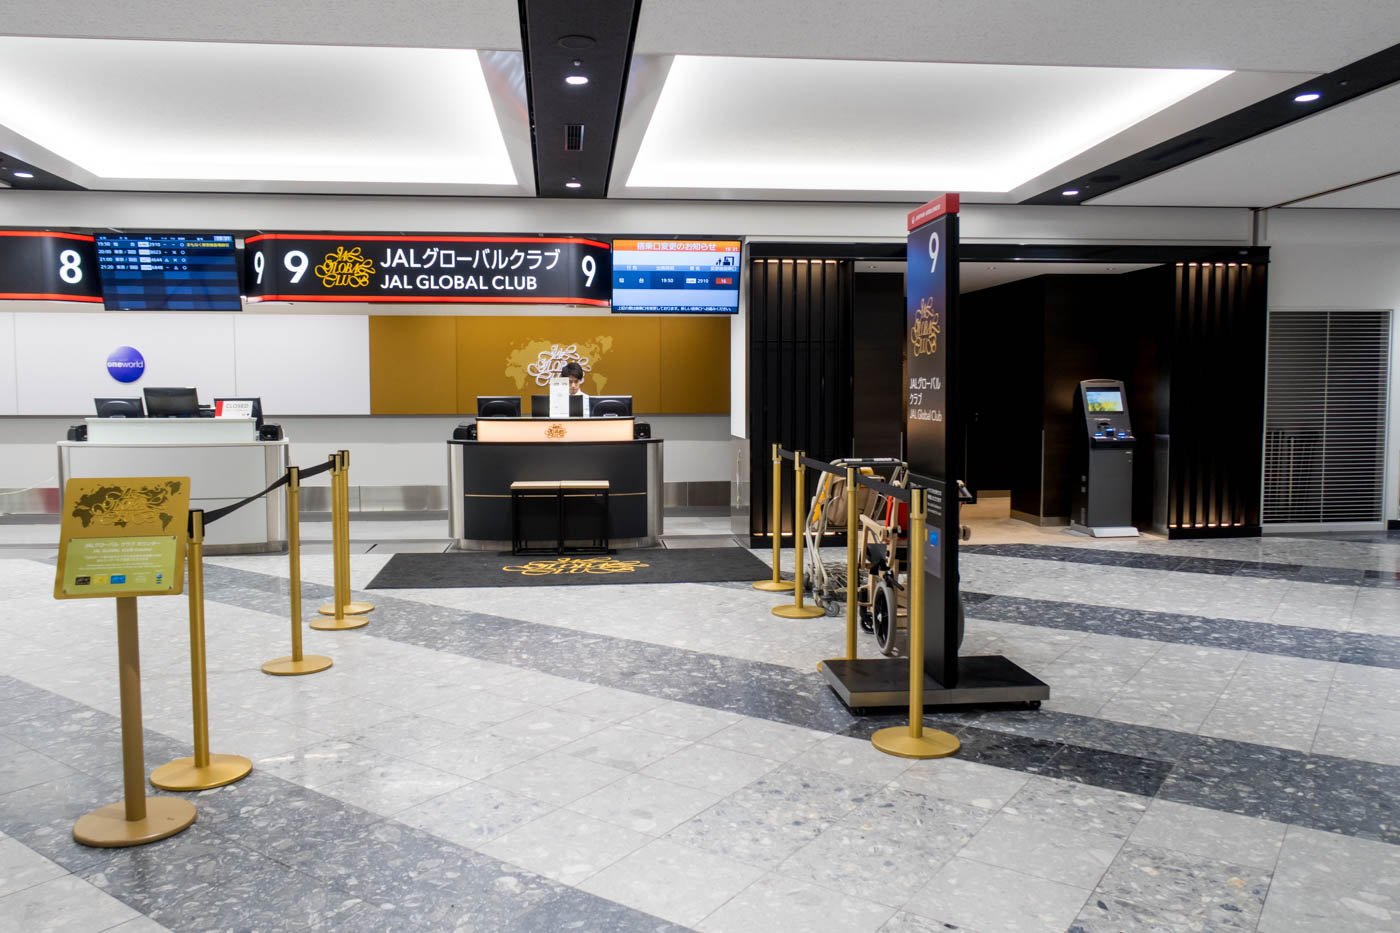 JAL Global Club Check-in Desks at Sapporo New Chitose